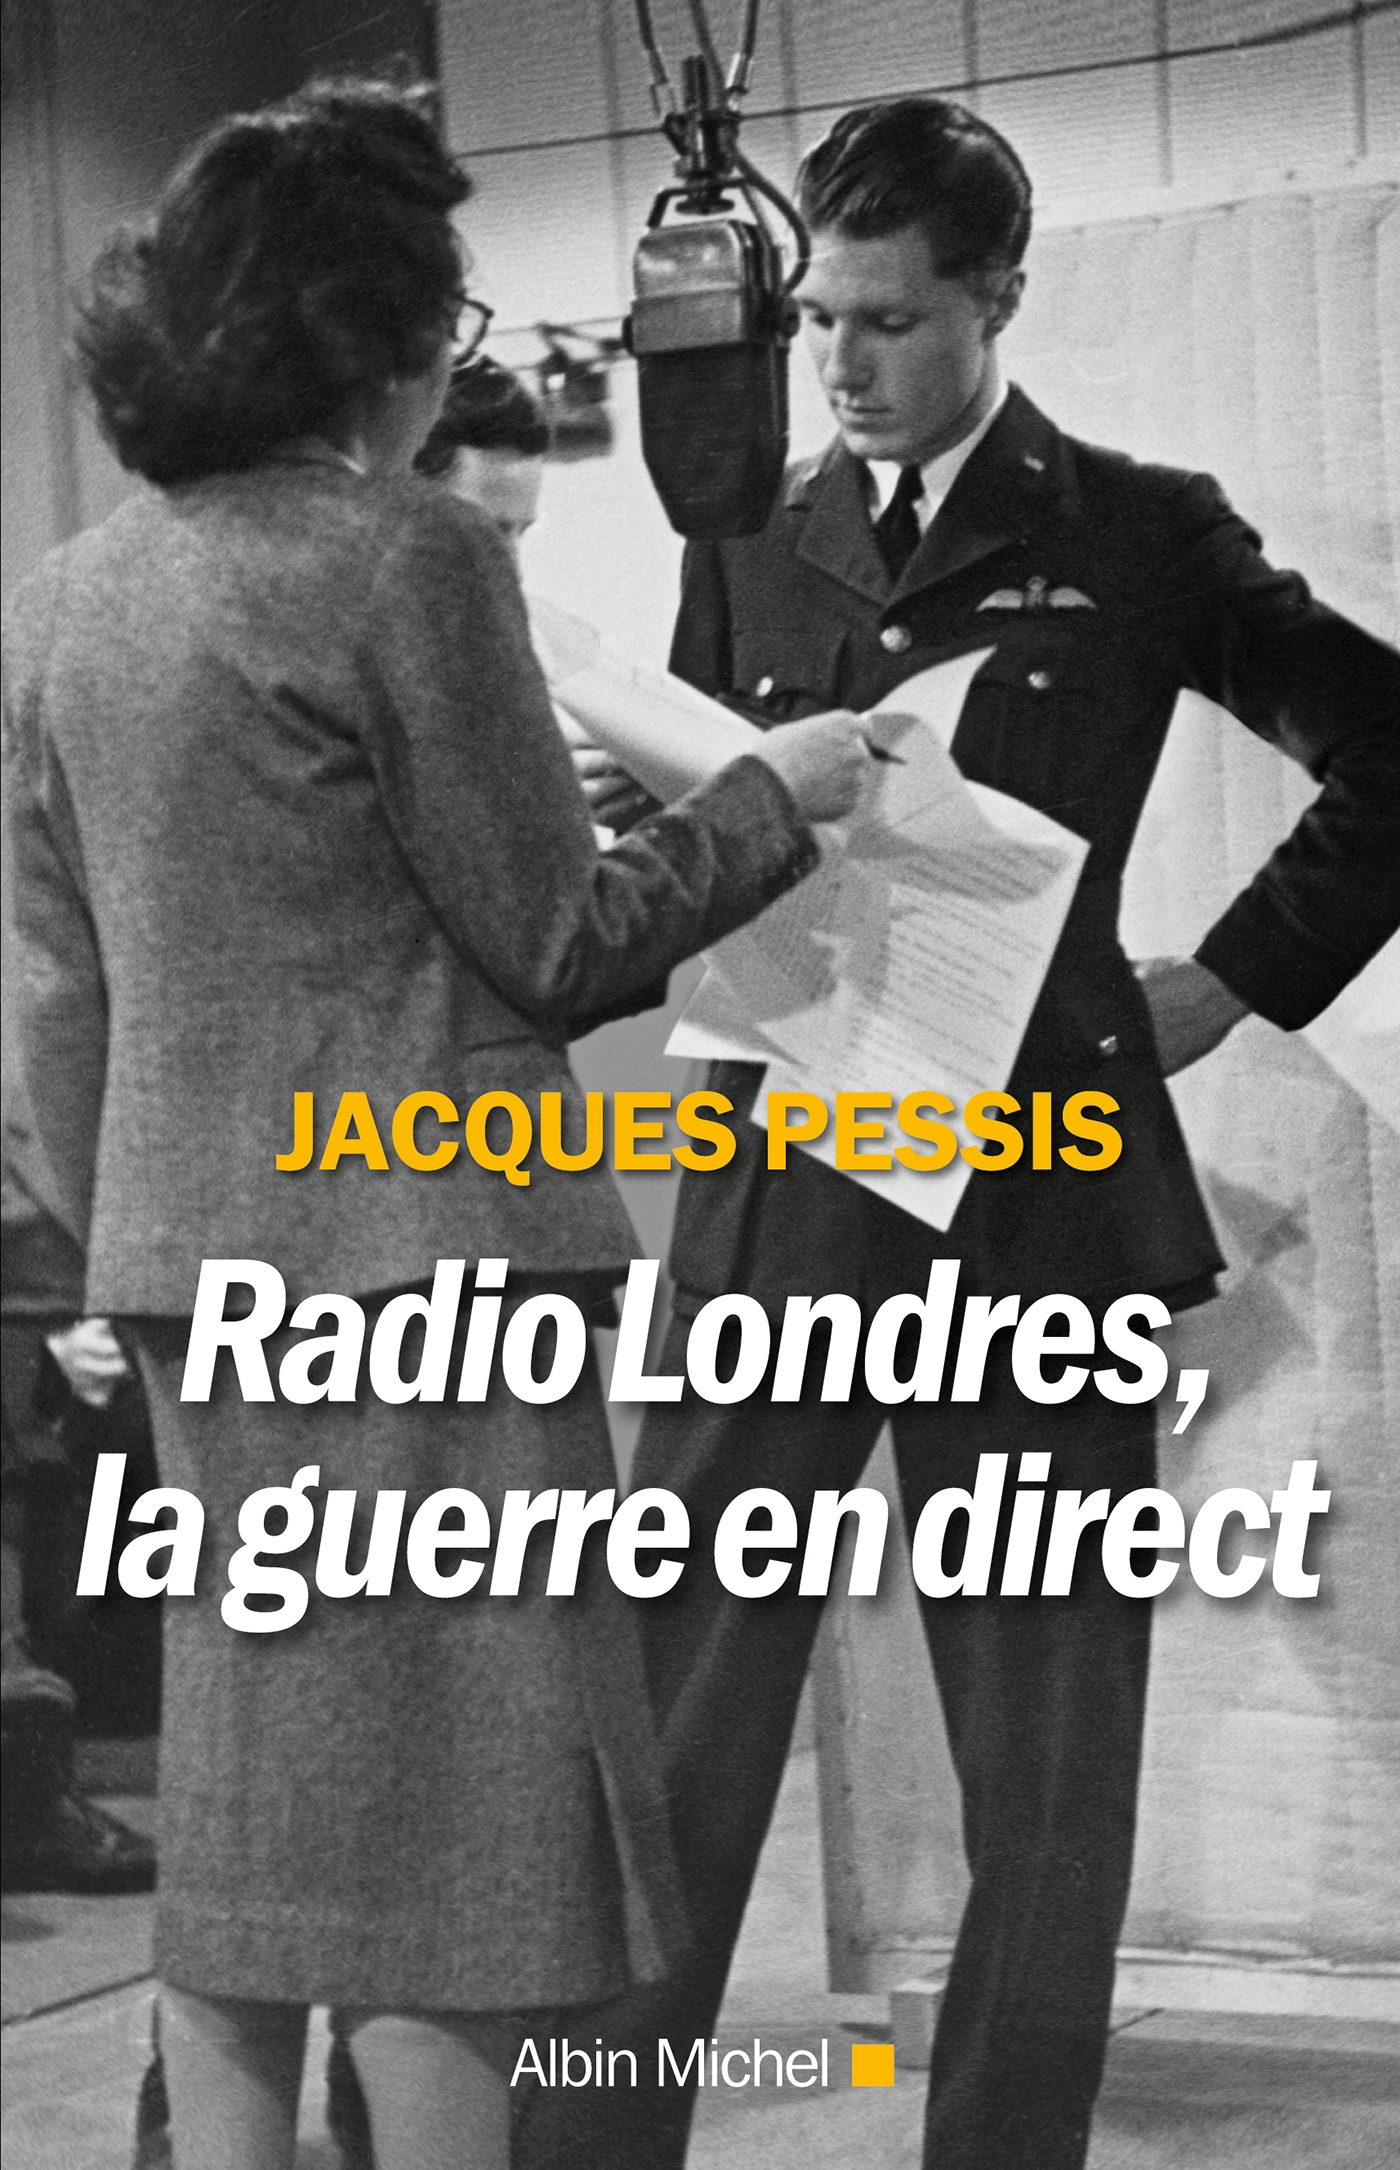 Radio Londres la guerre en direct